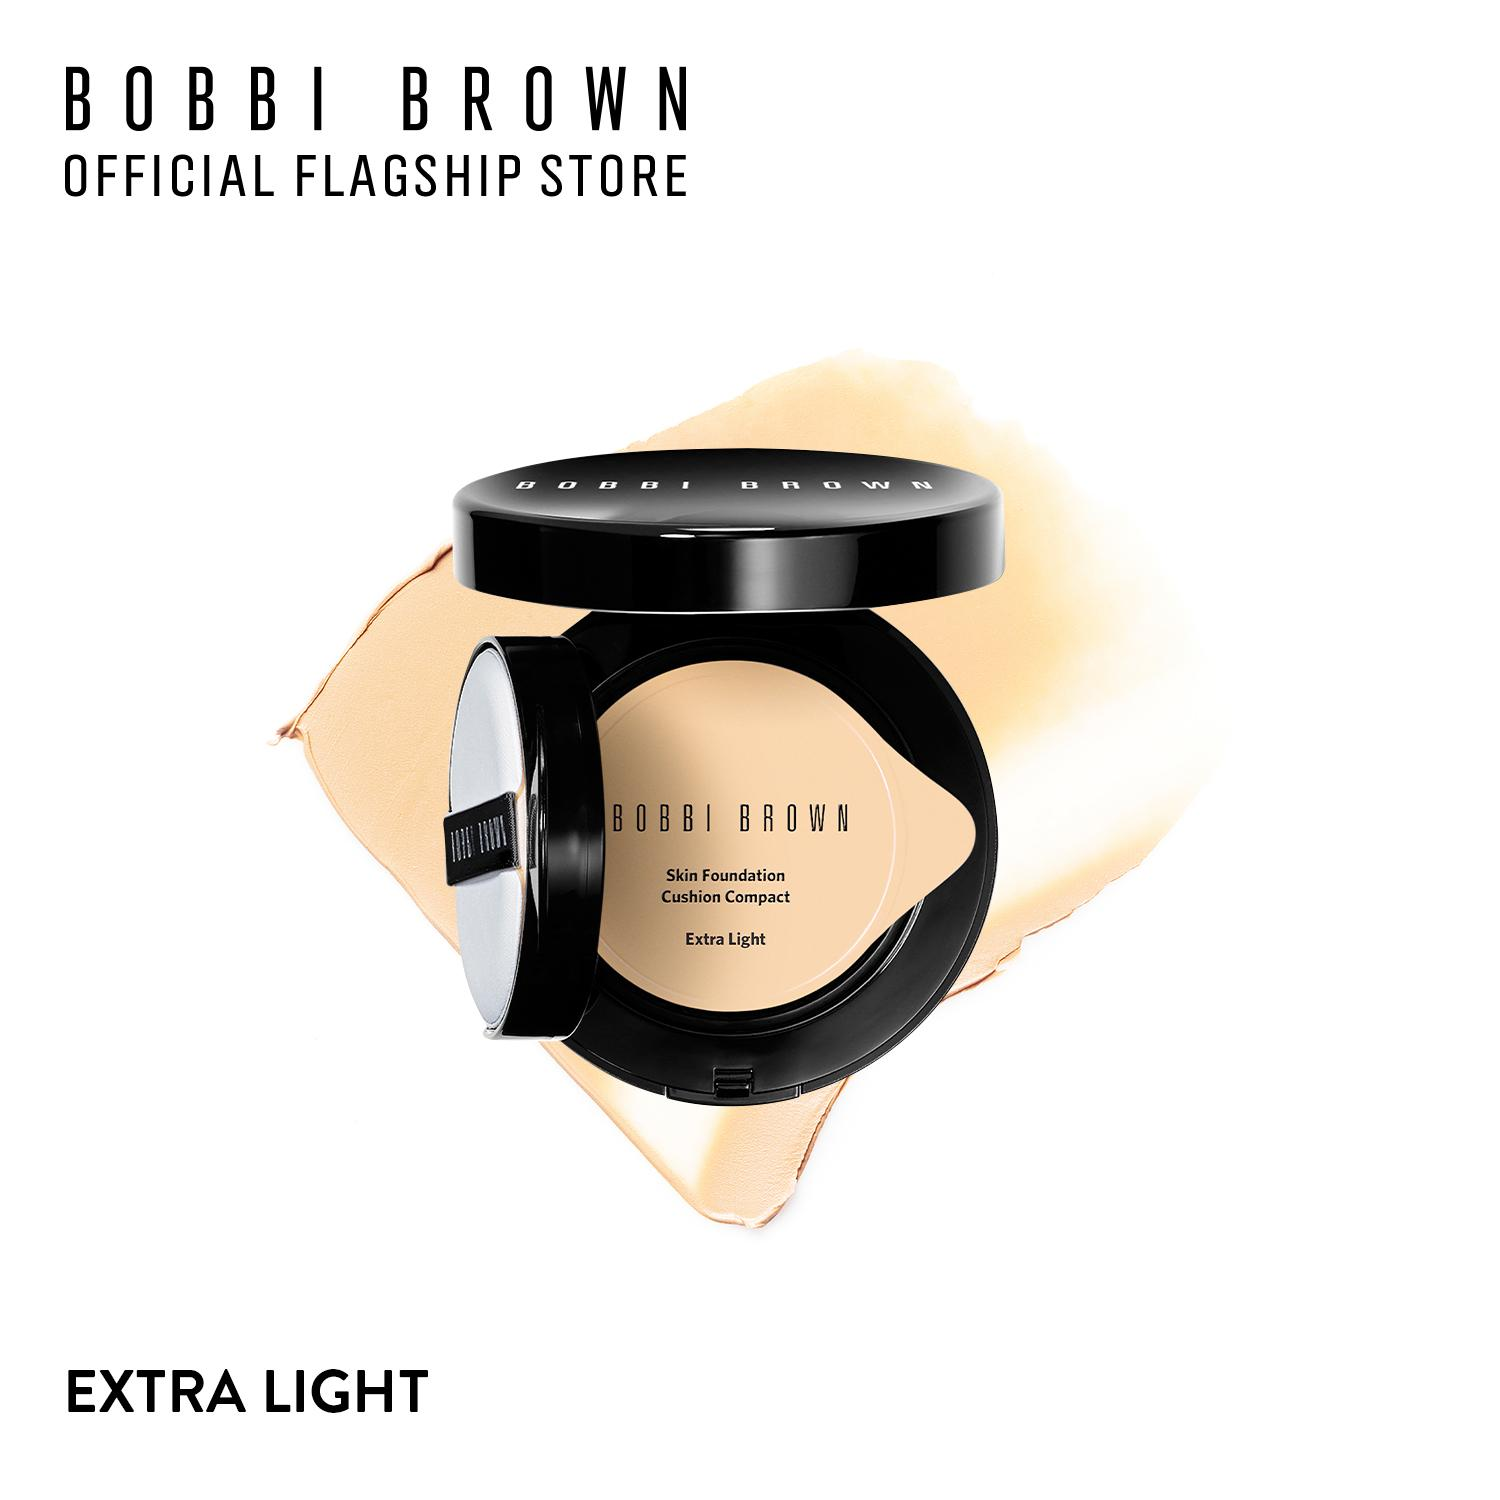 Phấn nền Bobbi Brown Skin Foundation Cushion Compact SPF 50 PA+++ 13g